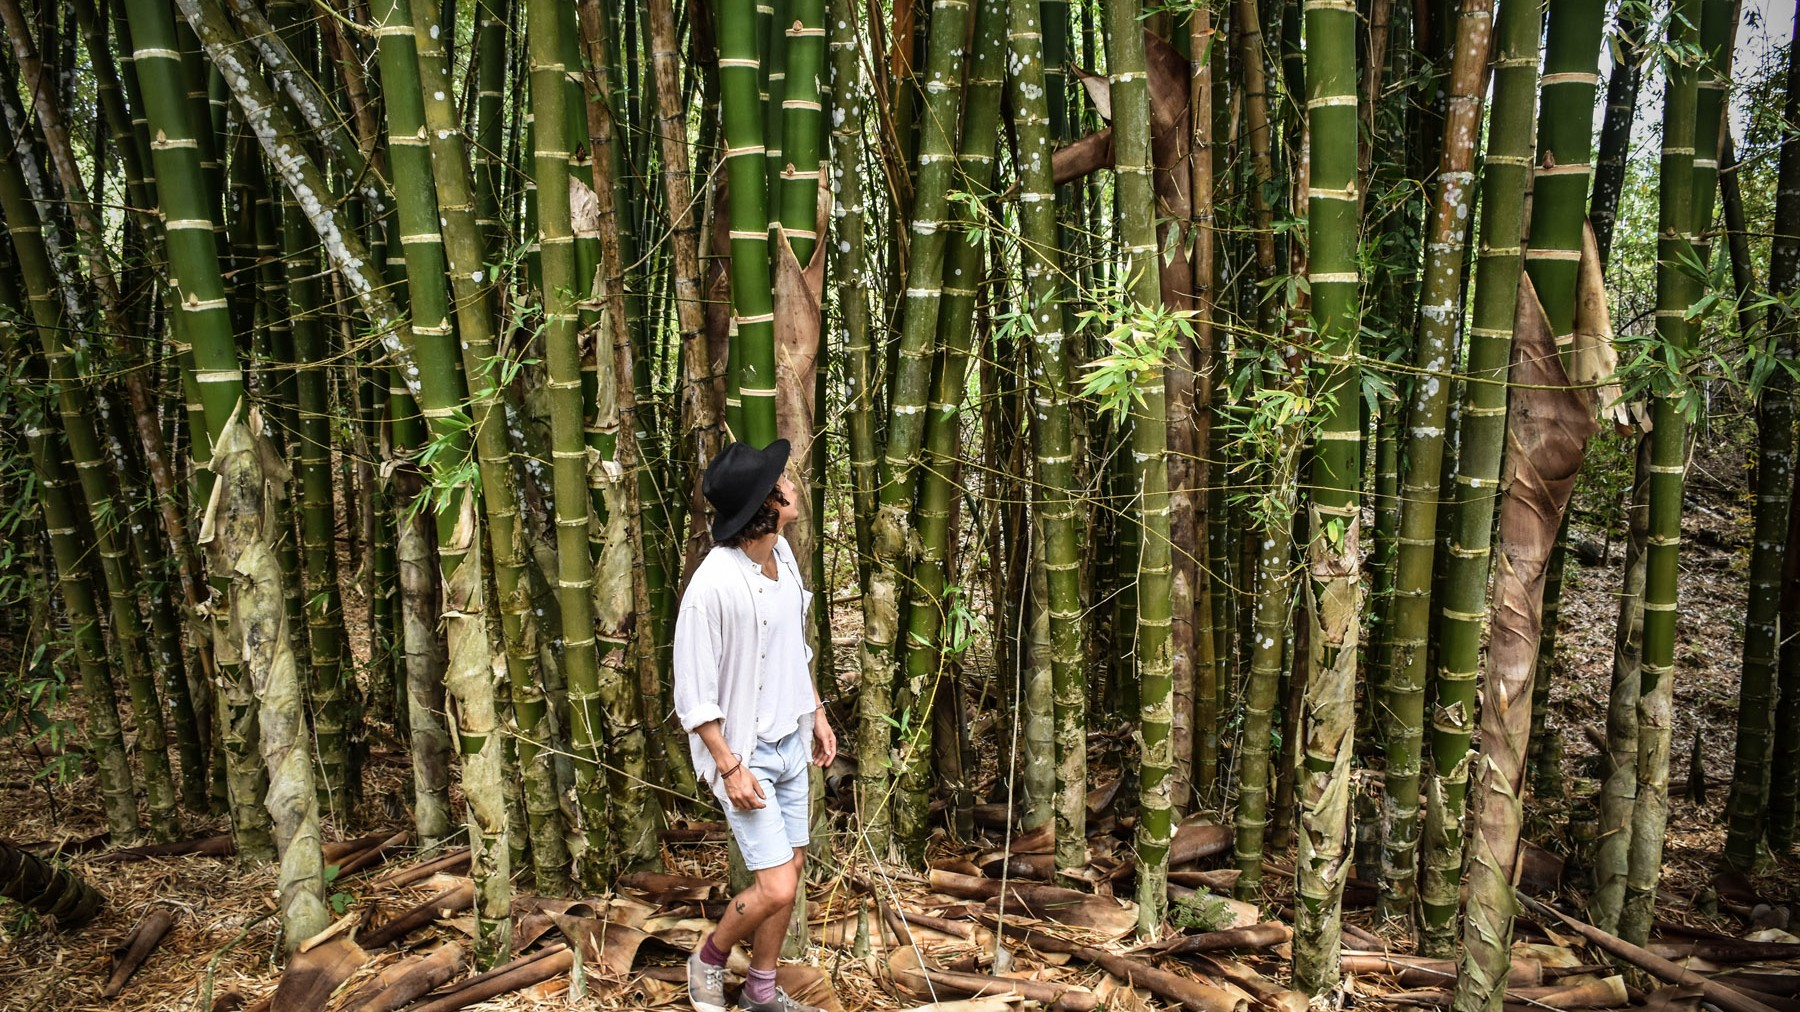 nico-with-bamboo-forest_31101794453_o